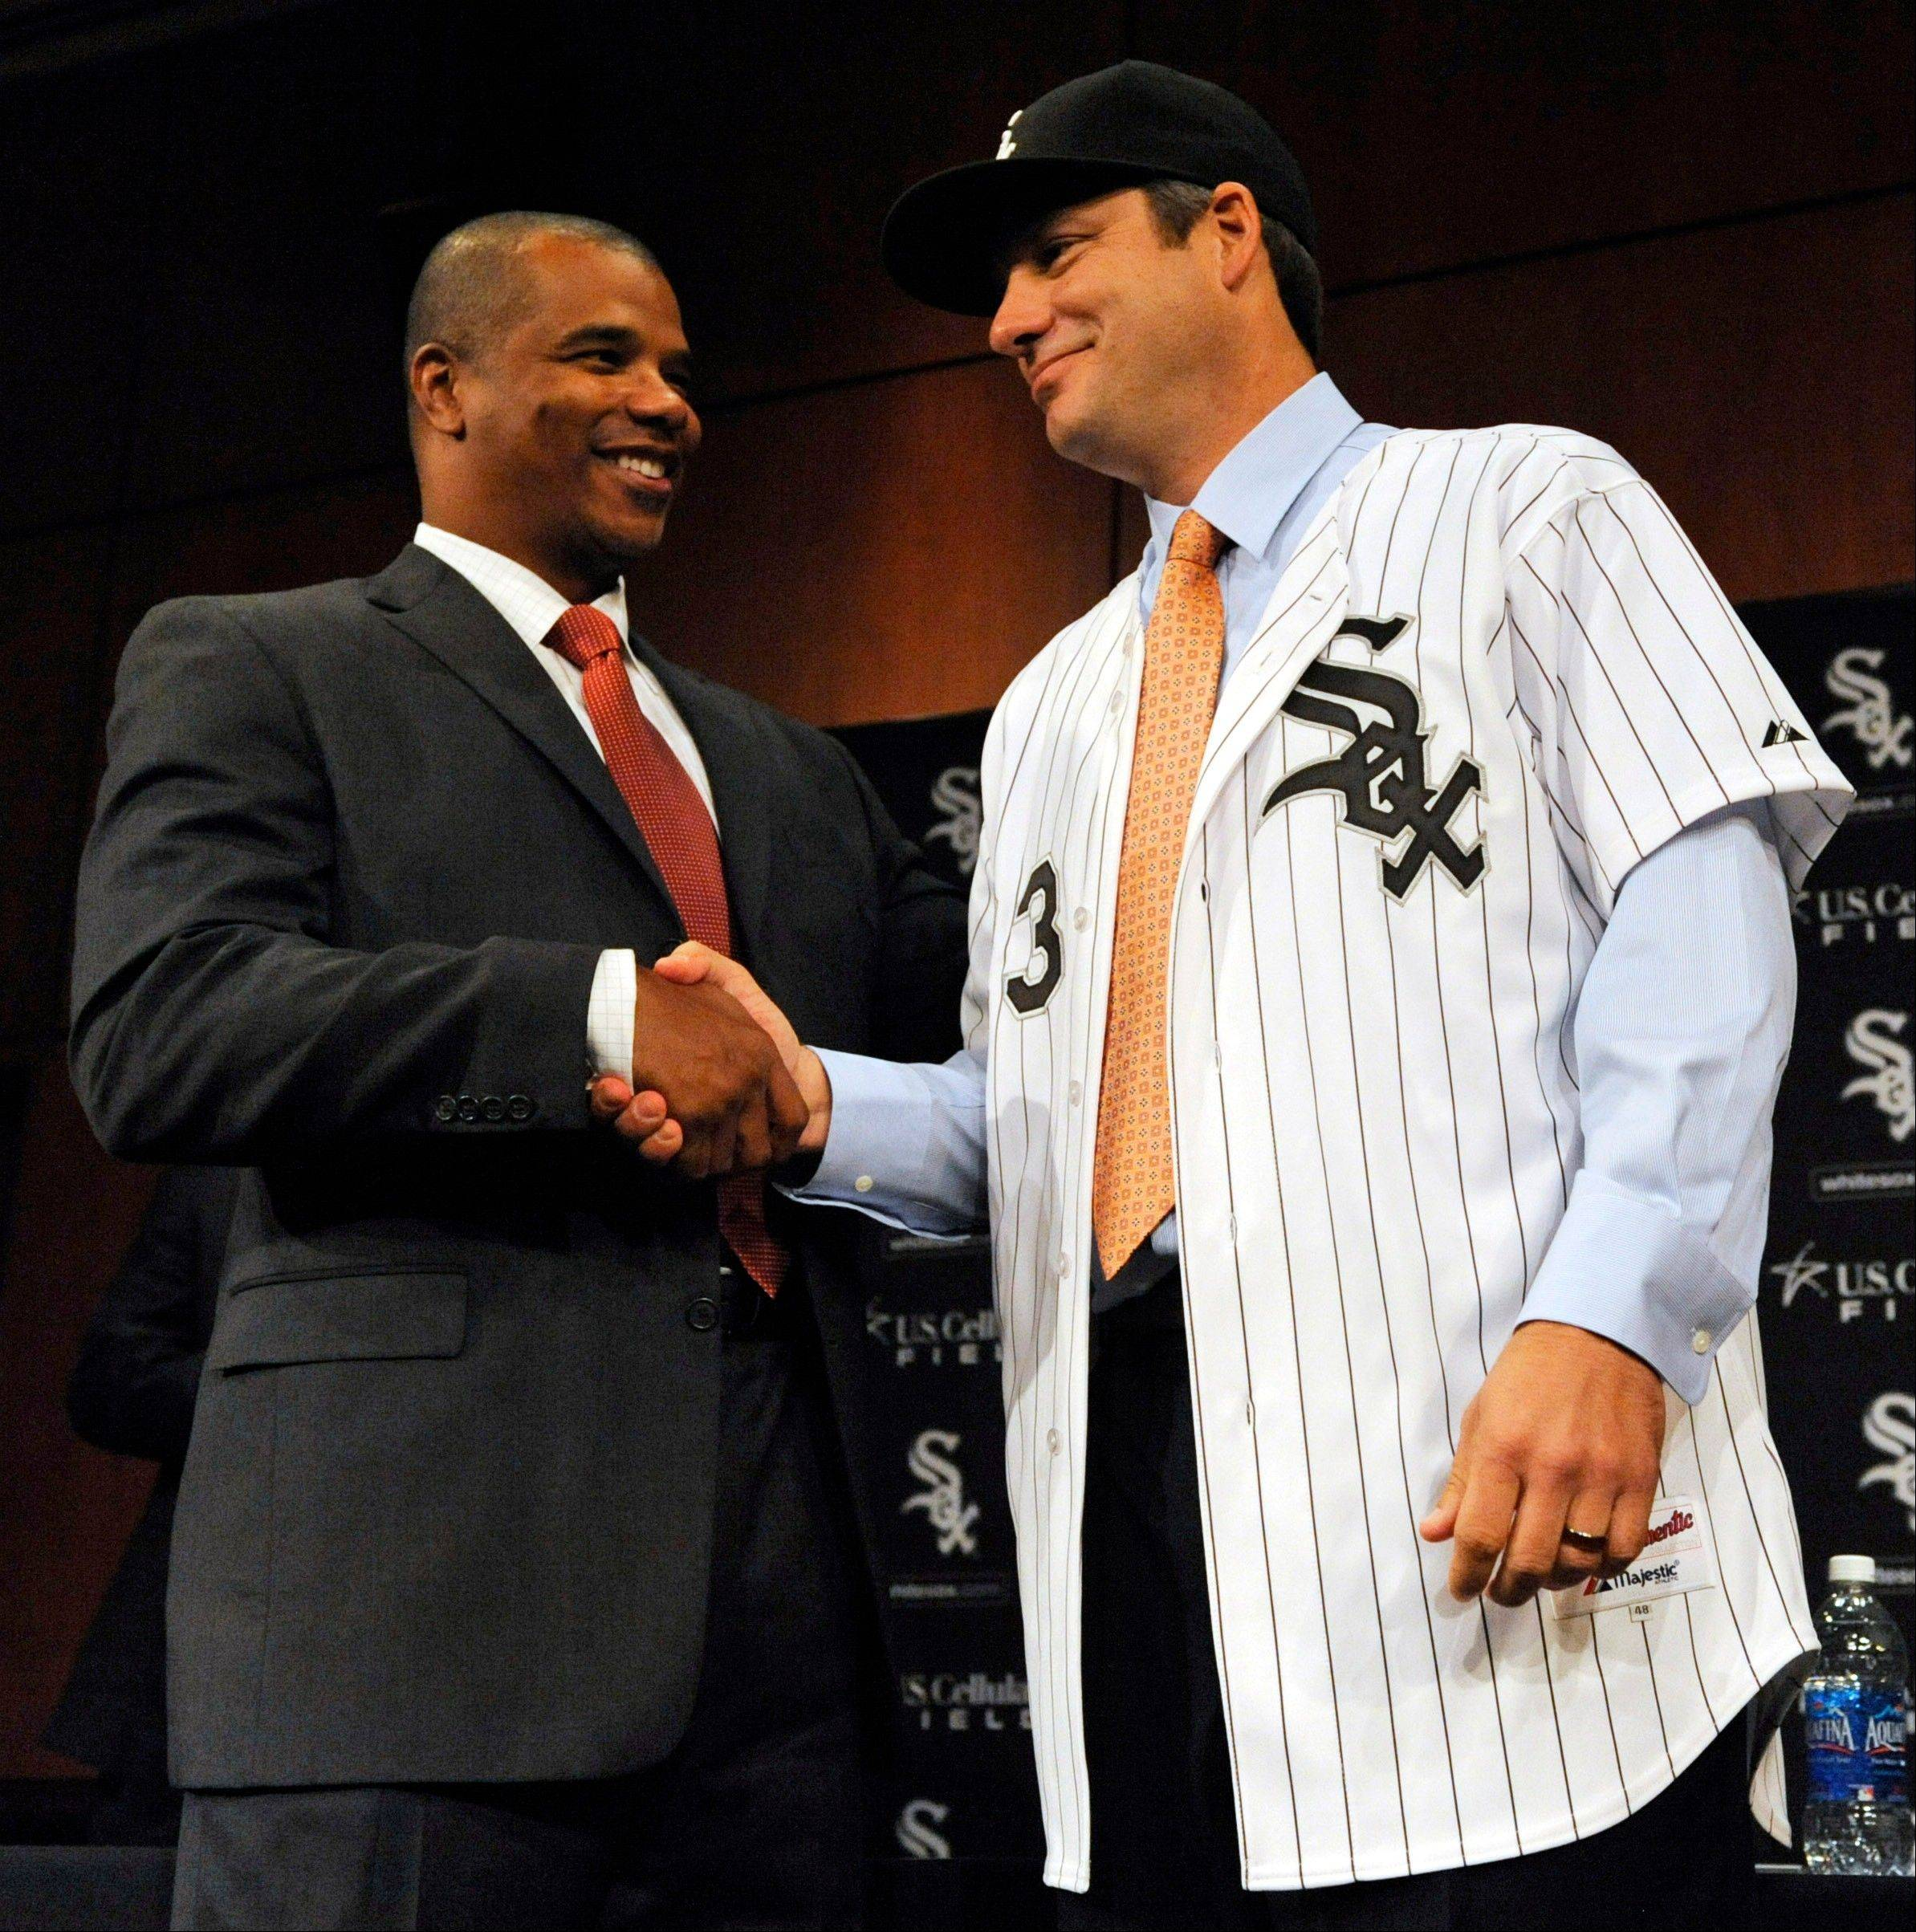 White Sox new manager Robin Ventura, right shakes hands with general manager Kenny Williams as he is introduces during a baseball news conference in Chicago, Tuesday, Oct. 11, 2011.